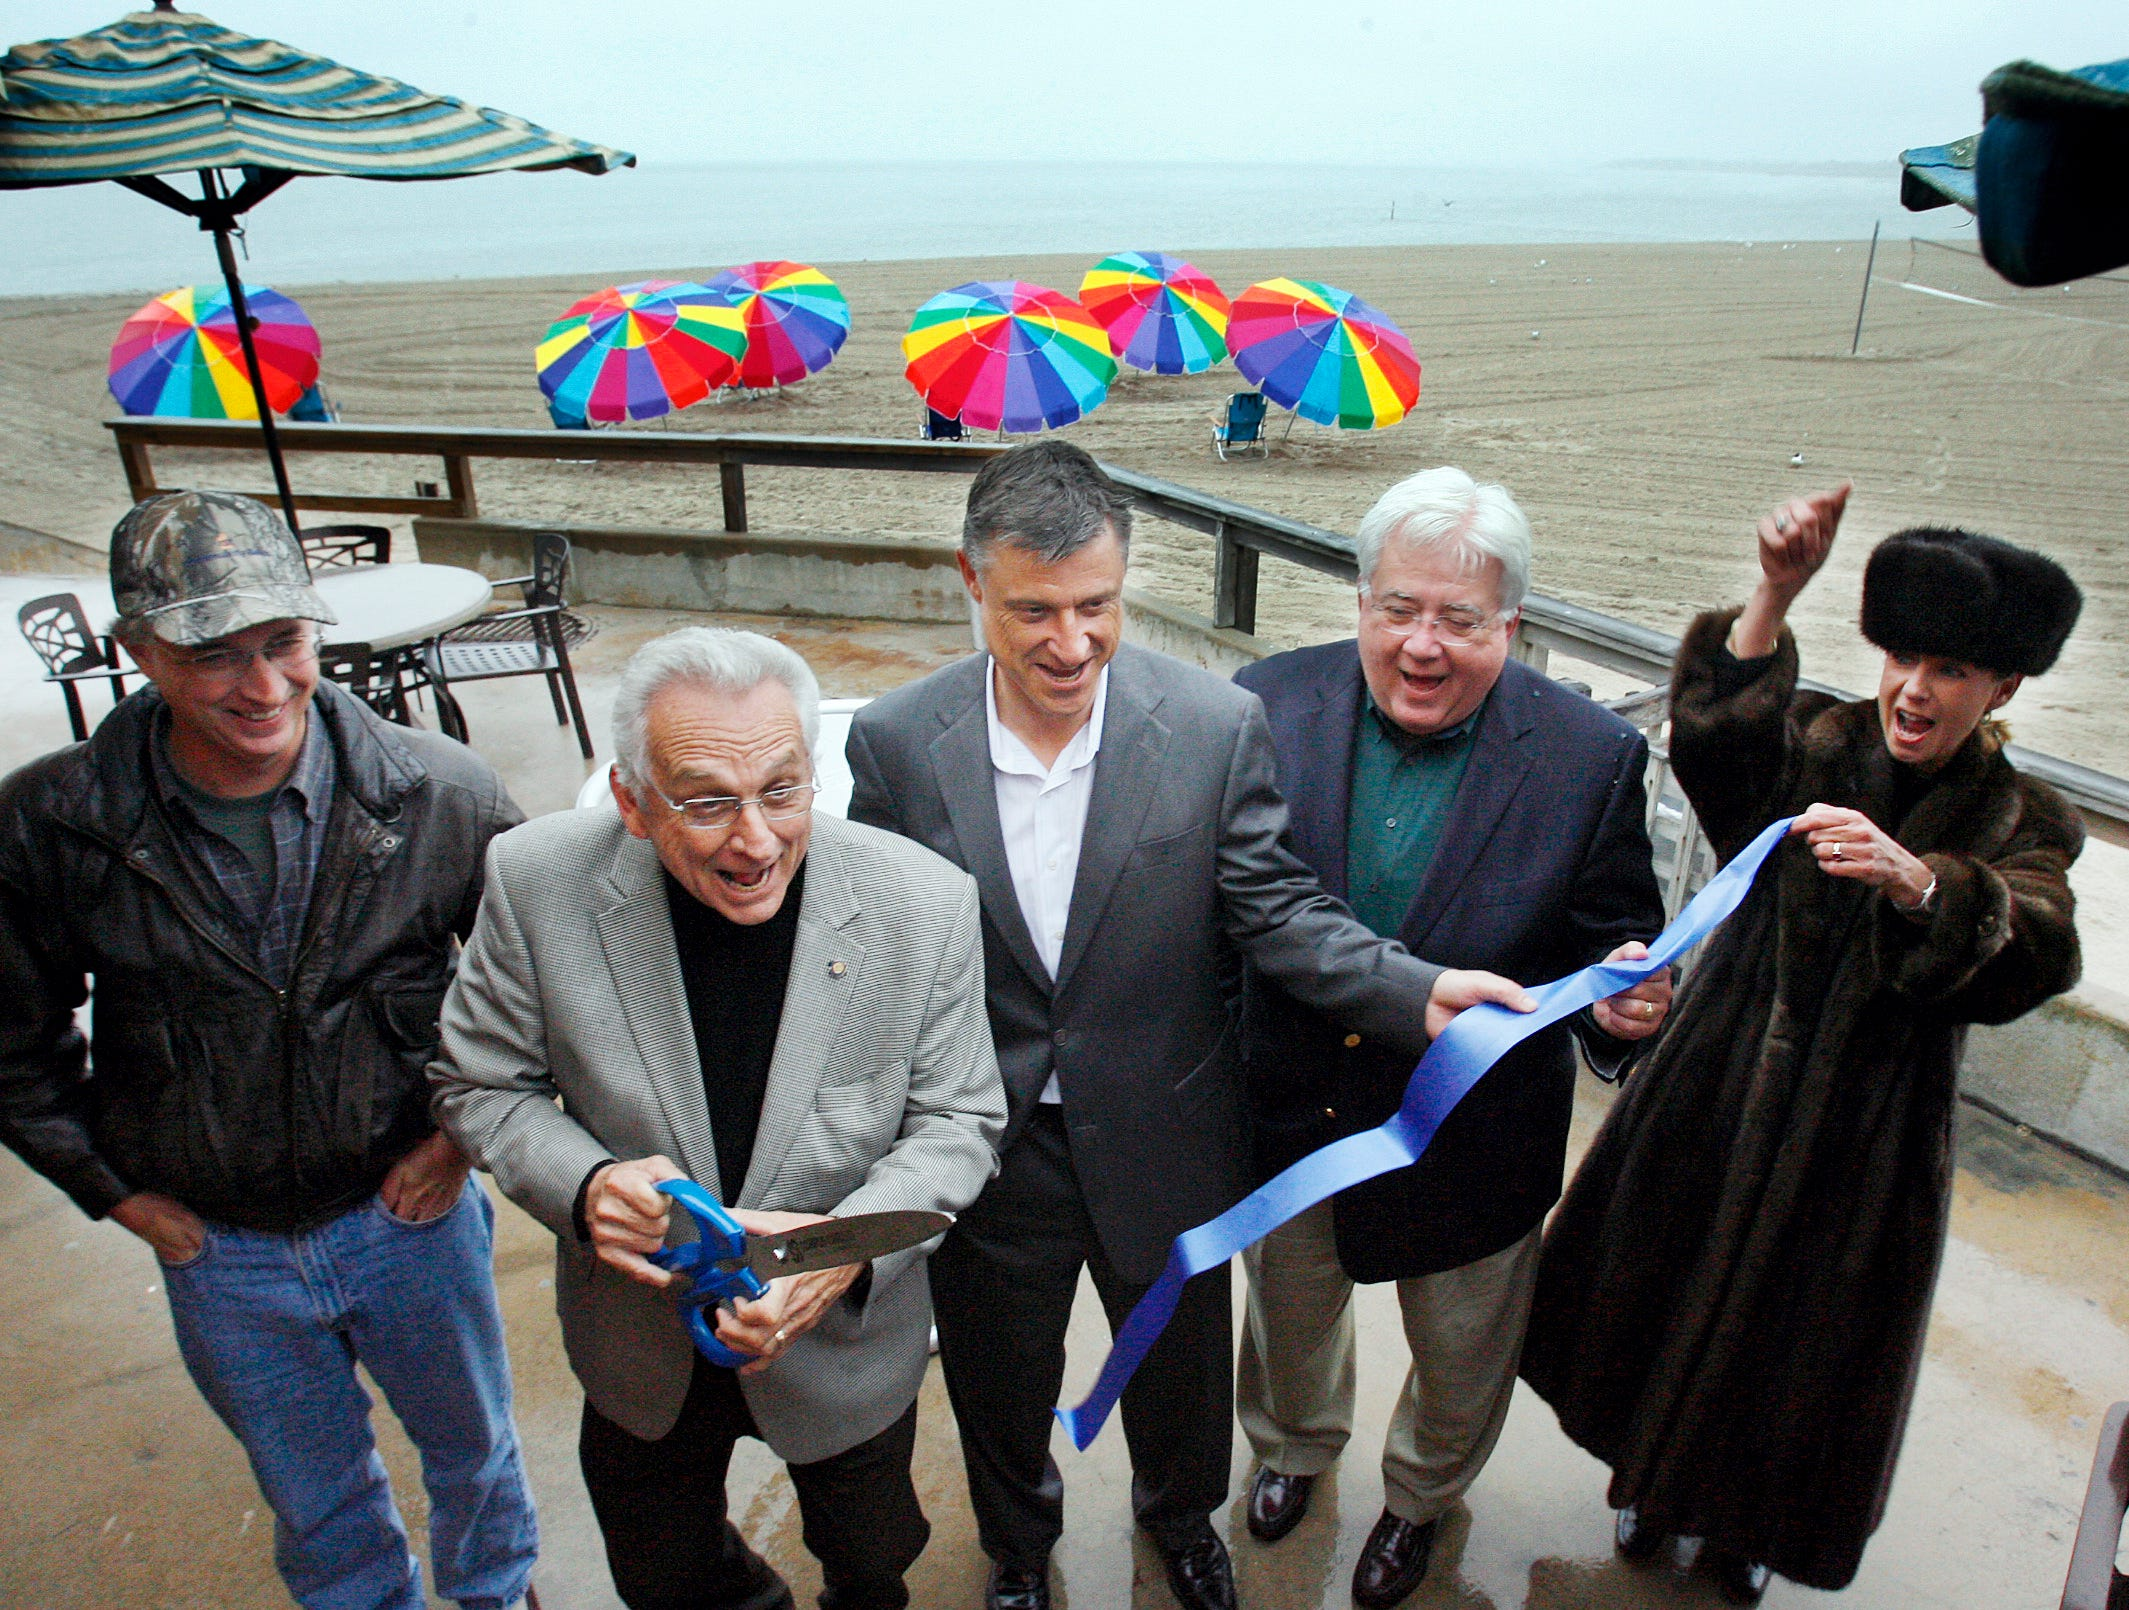 City Councilman Mike Hummell (left to right), Mayor Henry Garrett, Omni Hotel general manager Nils Stolzlechner, Corpus Christi Chamber of Commerce President Foster Edwards, and Omni Hotel director of Sales Paulette Good, were on hand for the ribboncutting of the new Seawall Beachfront Cafe next to McGee Beach in downtown Corpus Christi in March 2009.